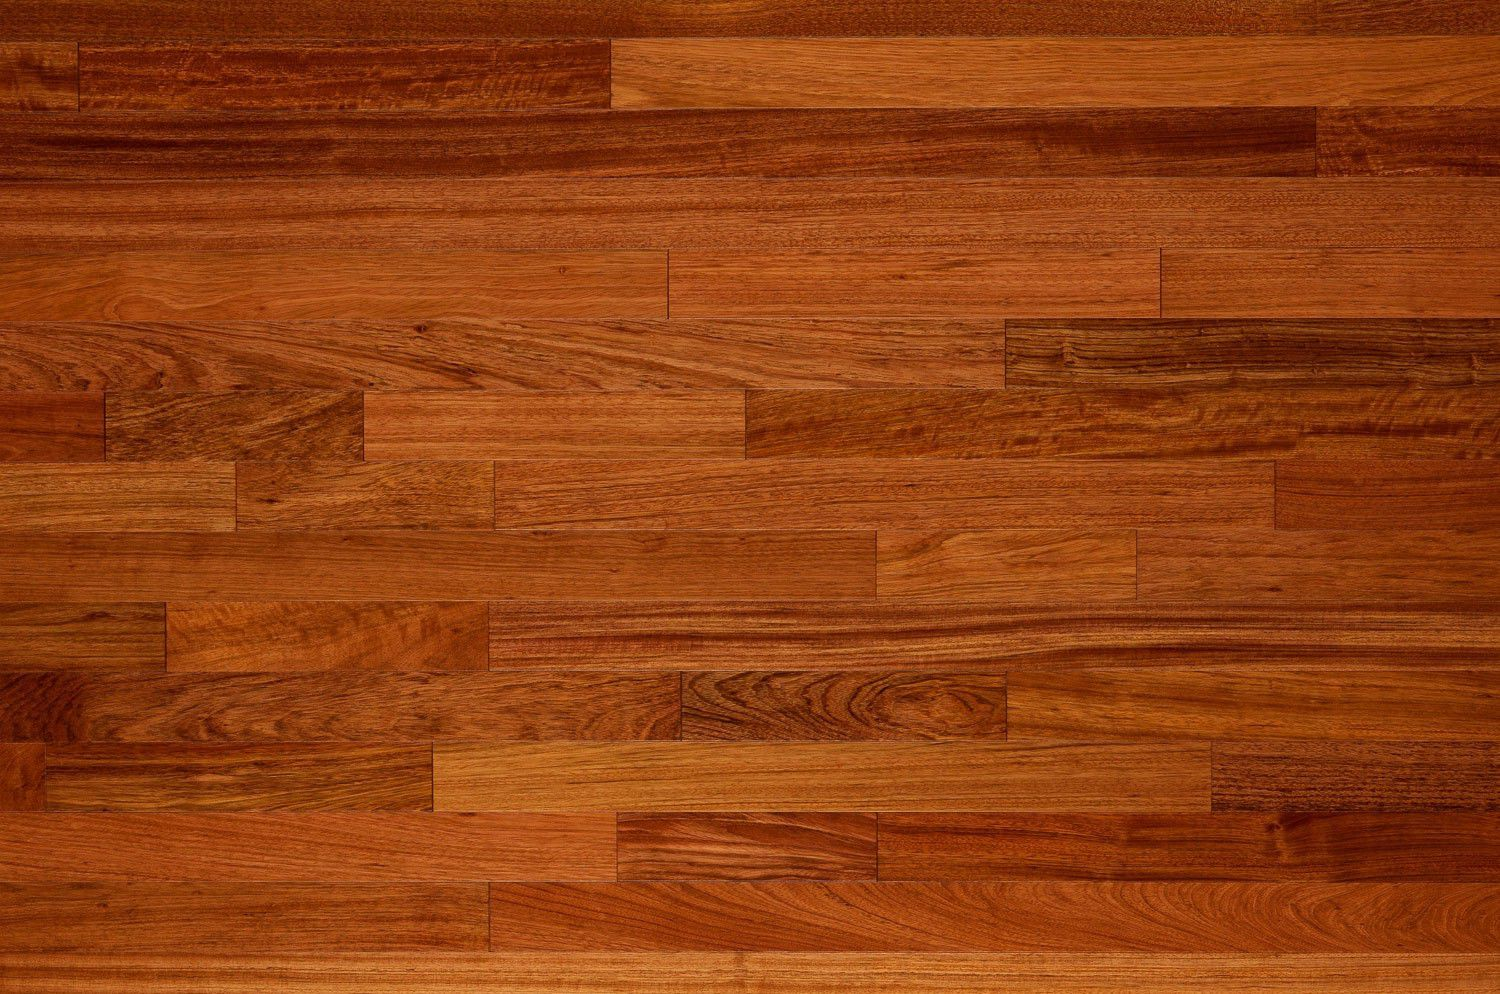 Cherry Wood Floor Texture